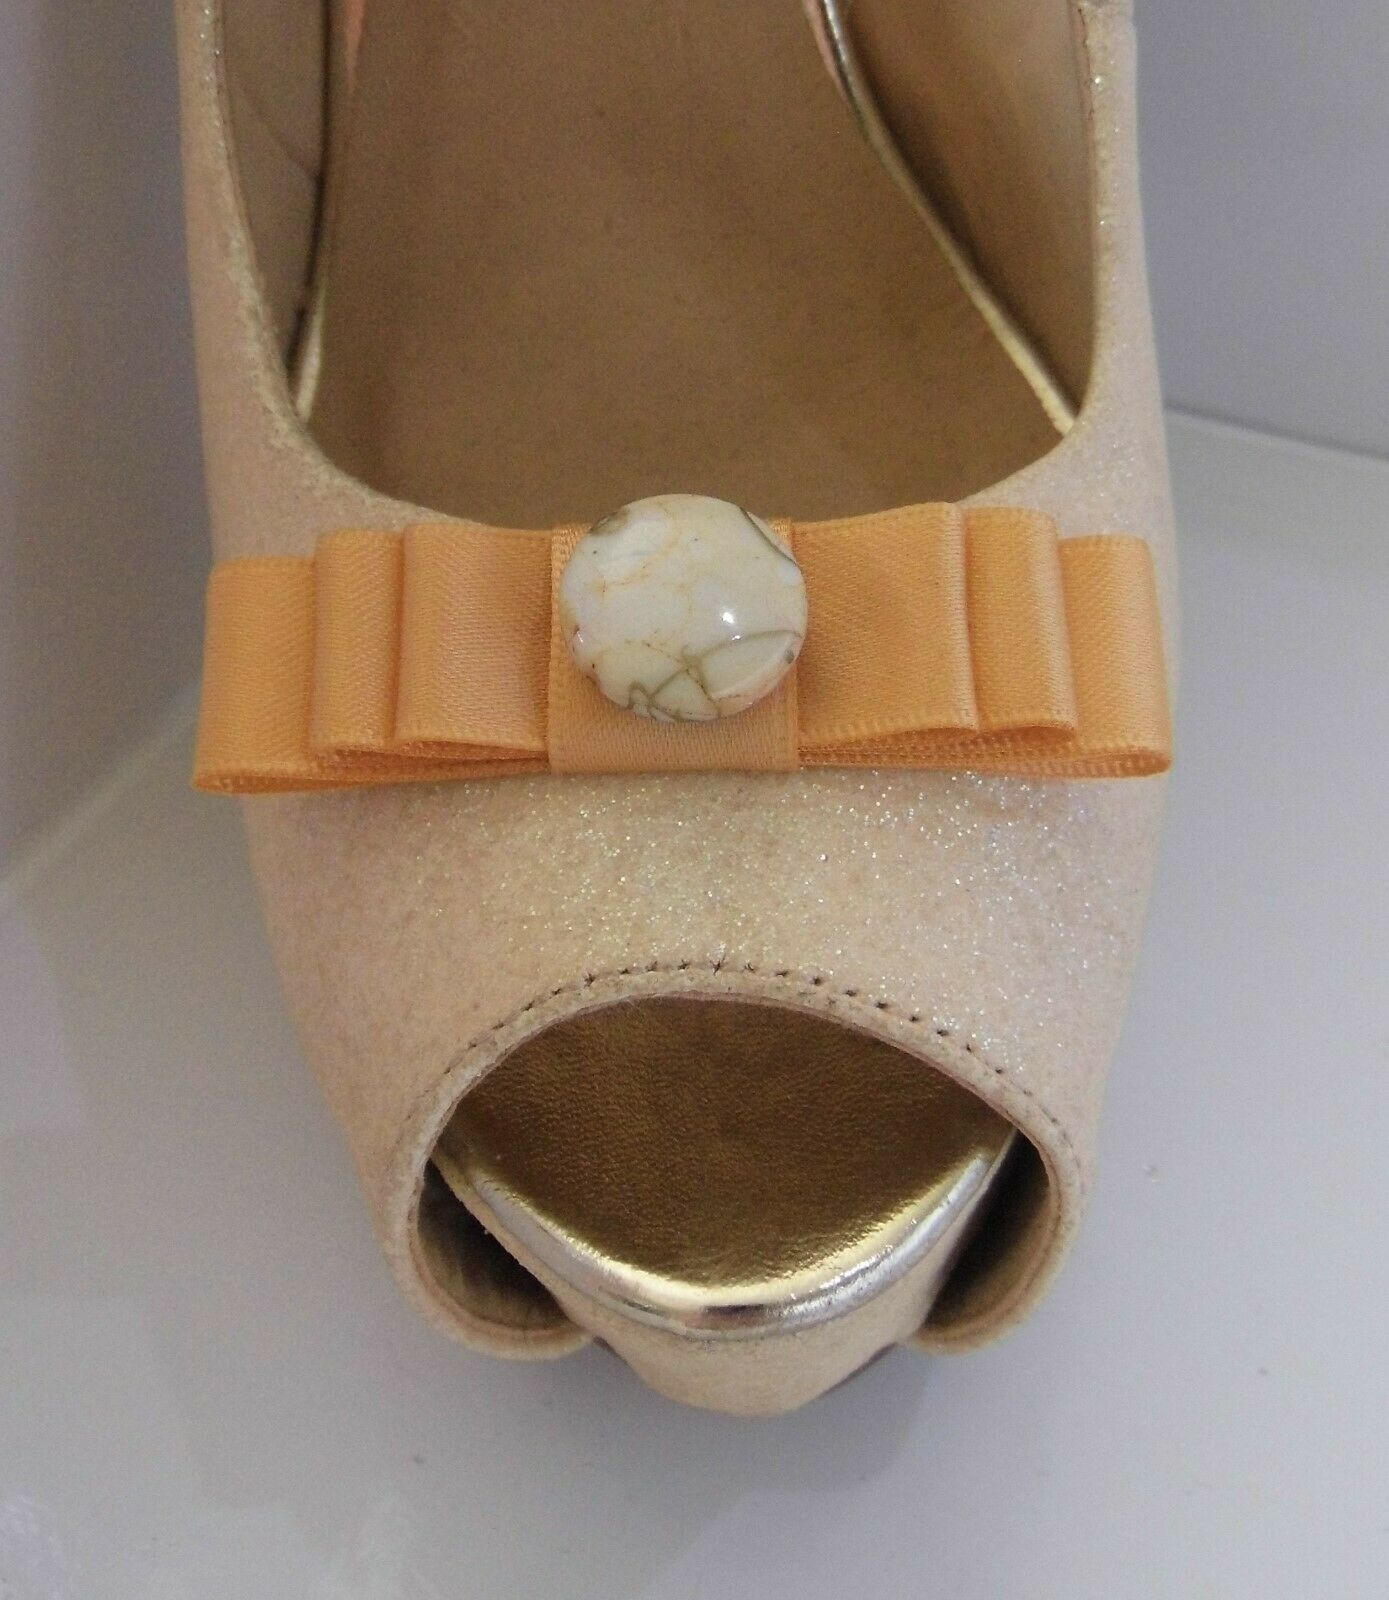 2 Small Peach Bow Clips for Shoes with Marble Style Button Centre